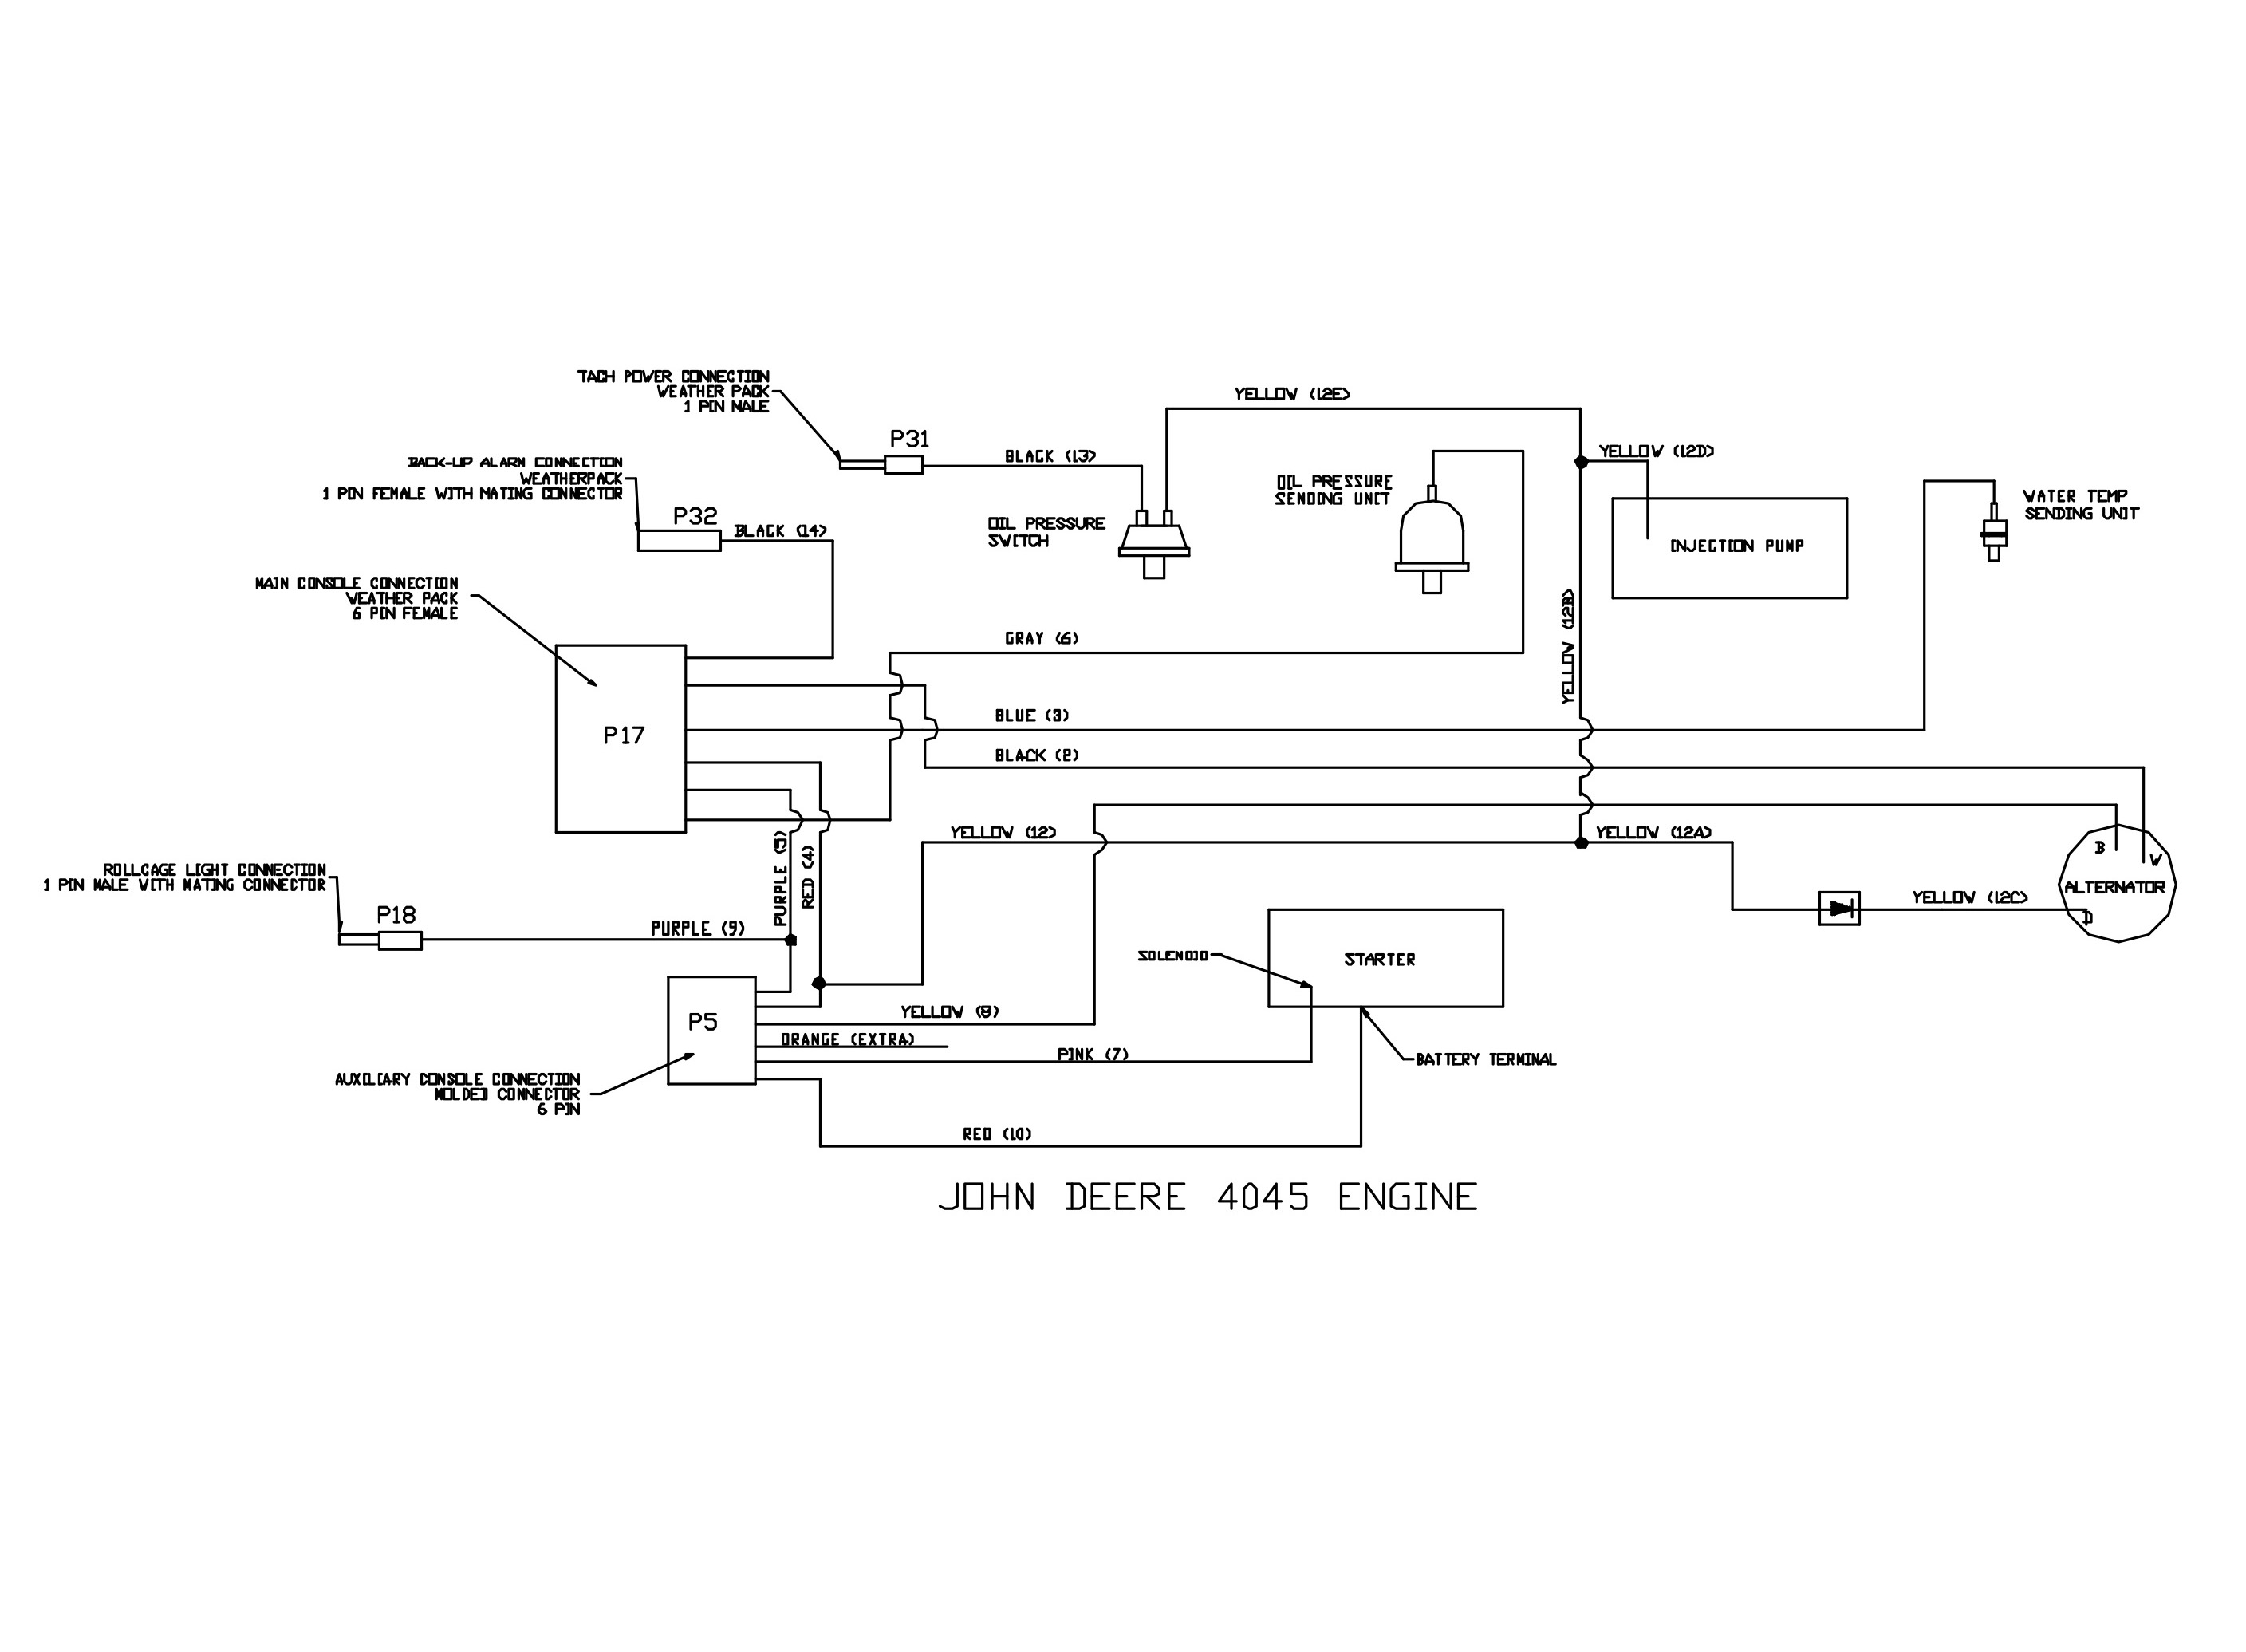 Asv Hd4520 Wiring Diagram Schematics Wiring Diagrams \u2022 ASV 4520 Specs  Asv Hd4520 Wiring Diagram